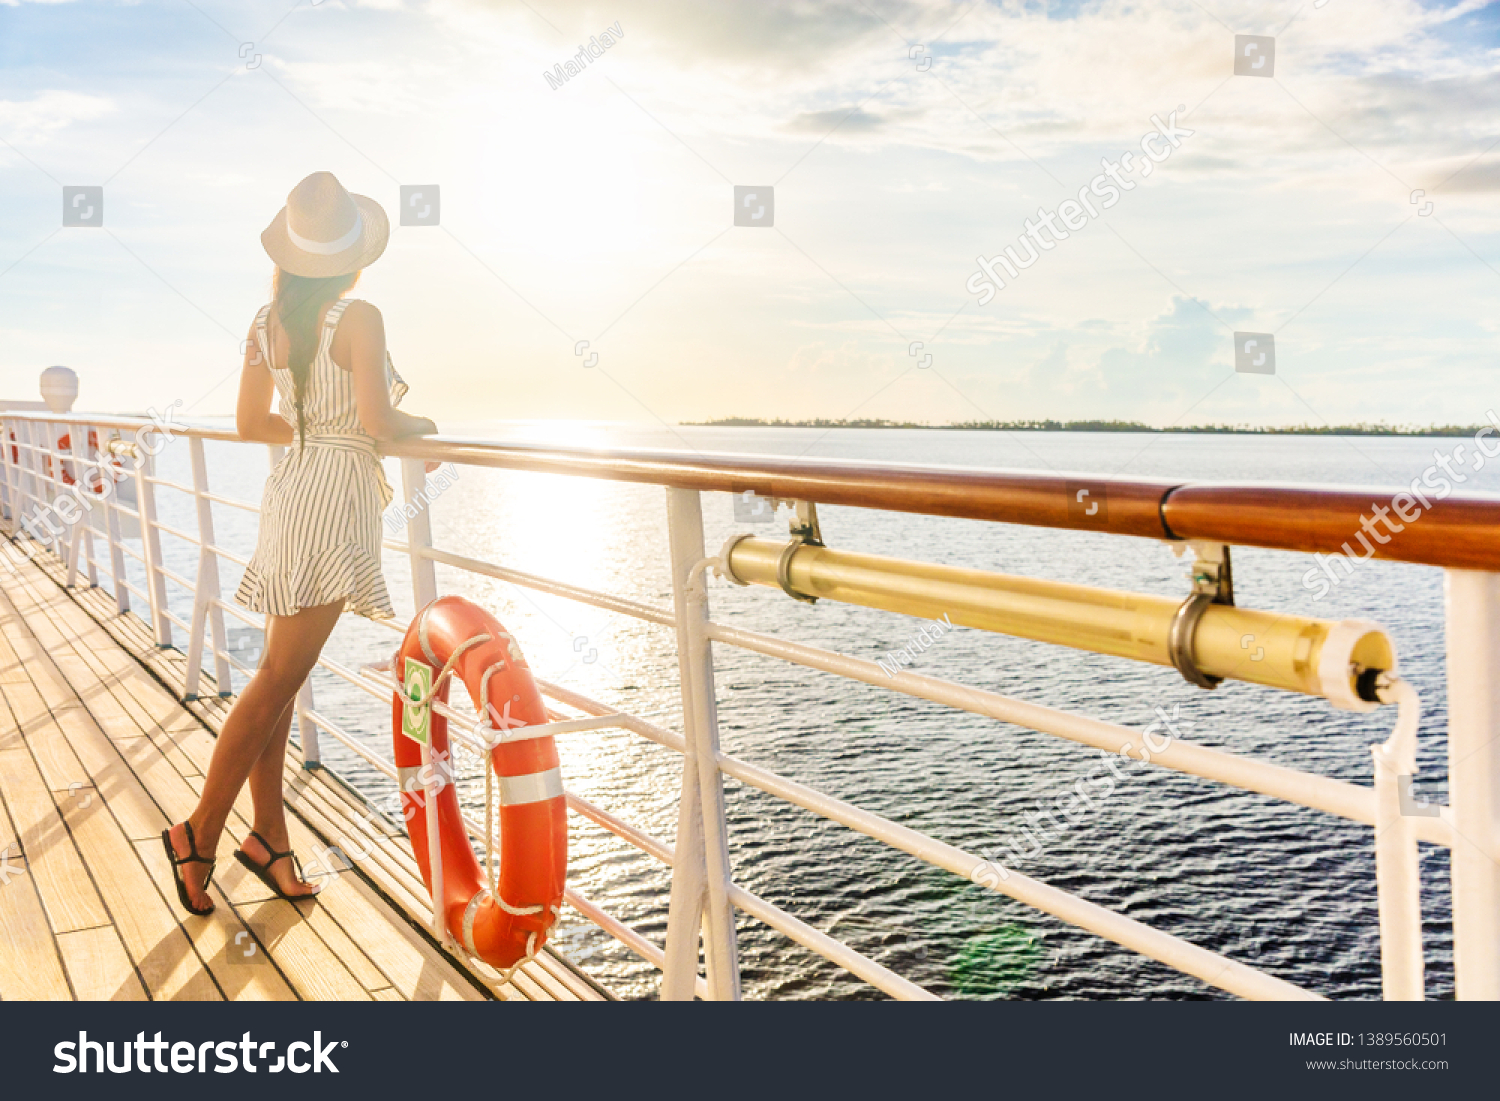 Luxury cruise ship travel elegant tourist woman watching sunset on balcony deck of Europe mediterranean cruising destination. Summer vacation cruiseship sailing away on holiday. #1389560501